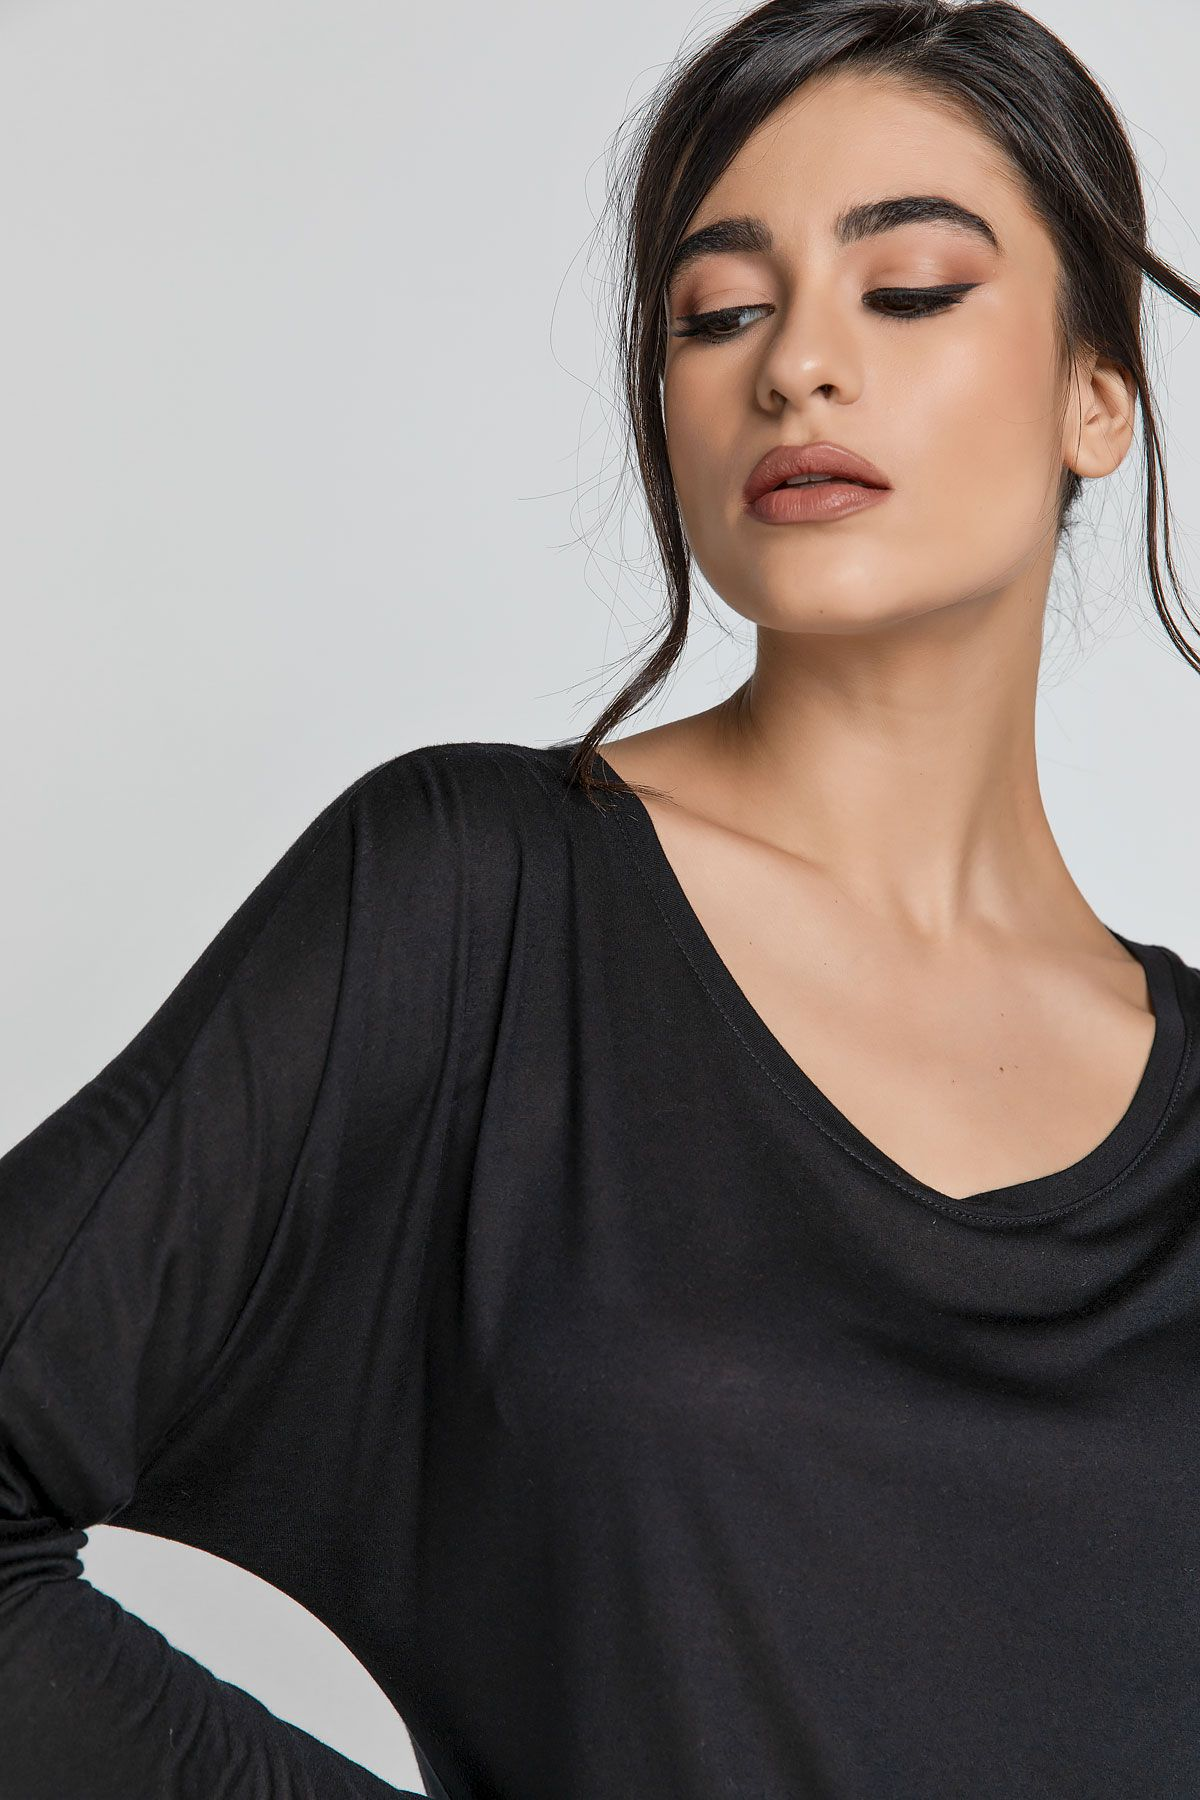 Black Top with Long Batwing Sleeves by SWL